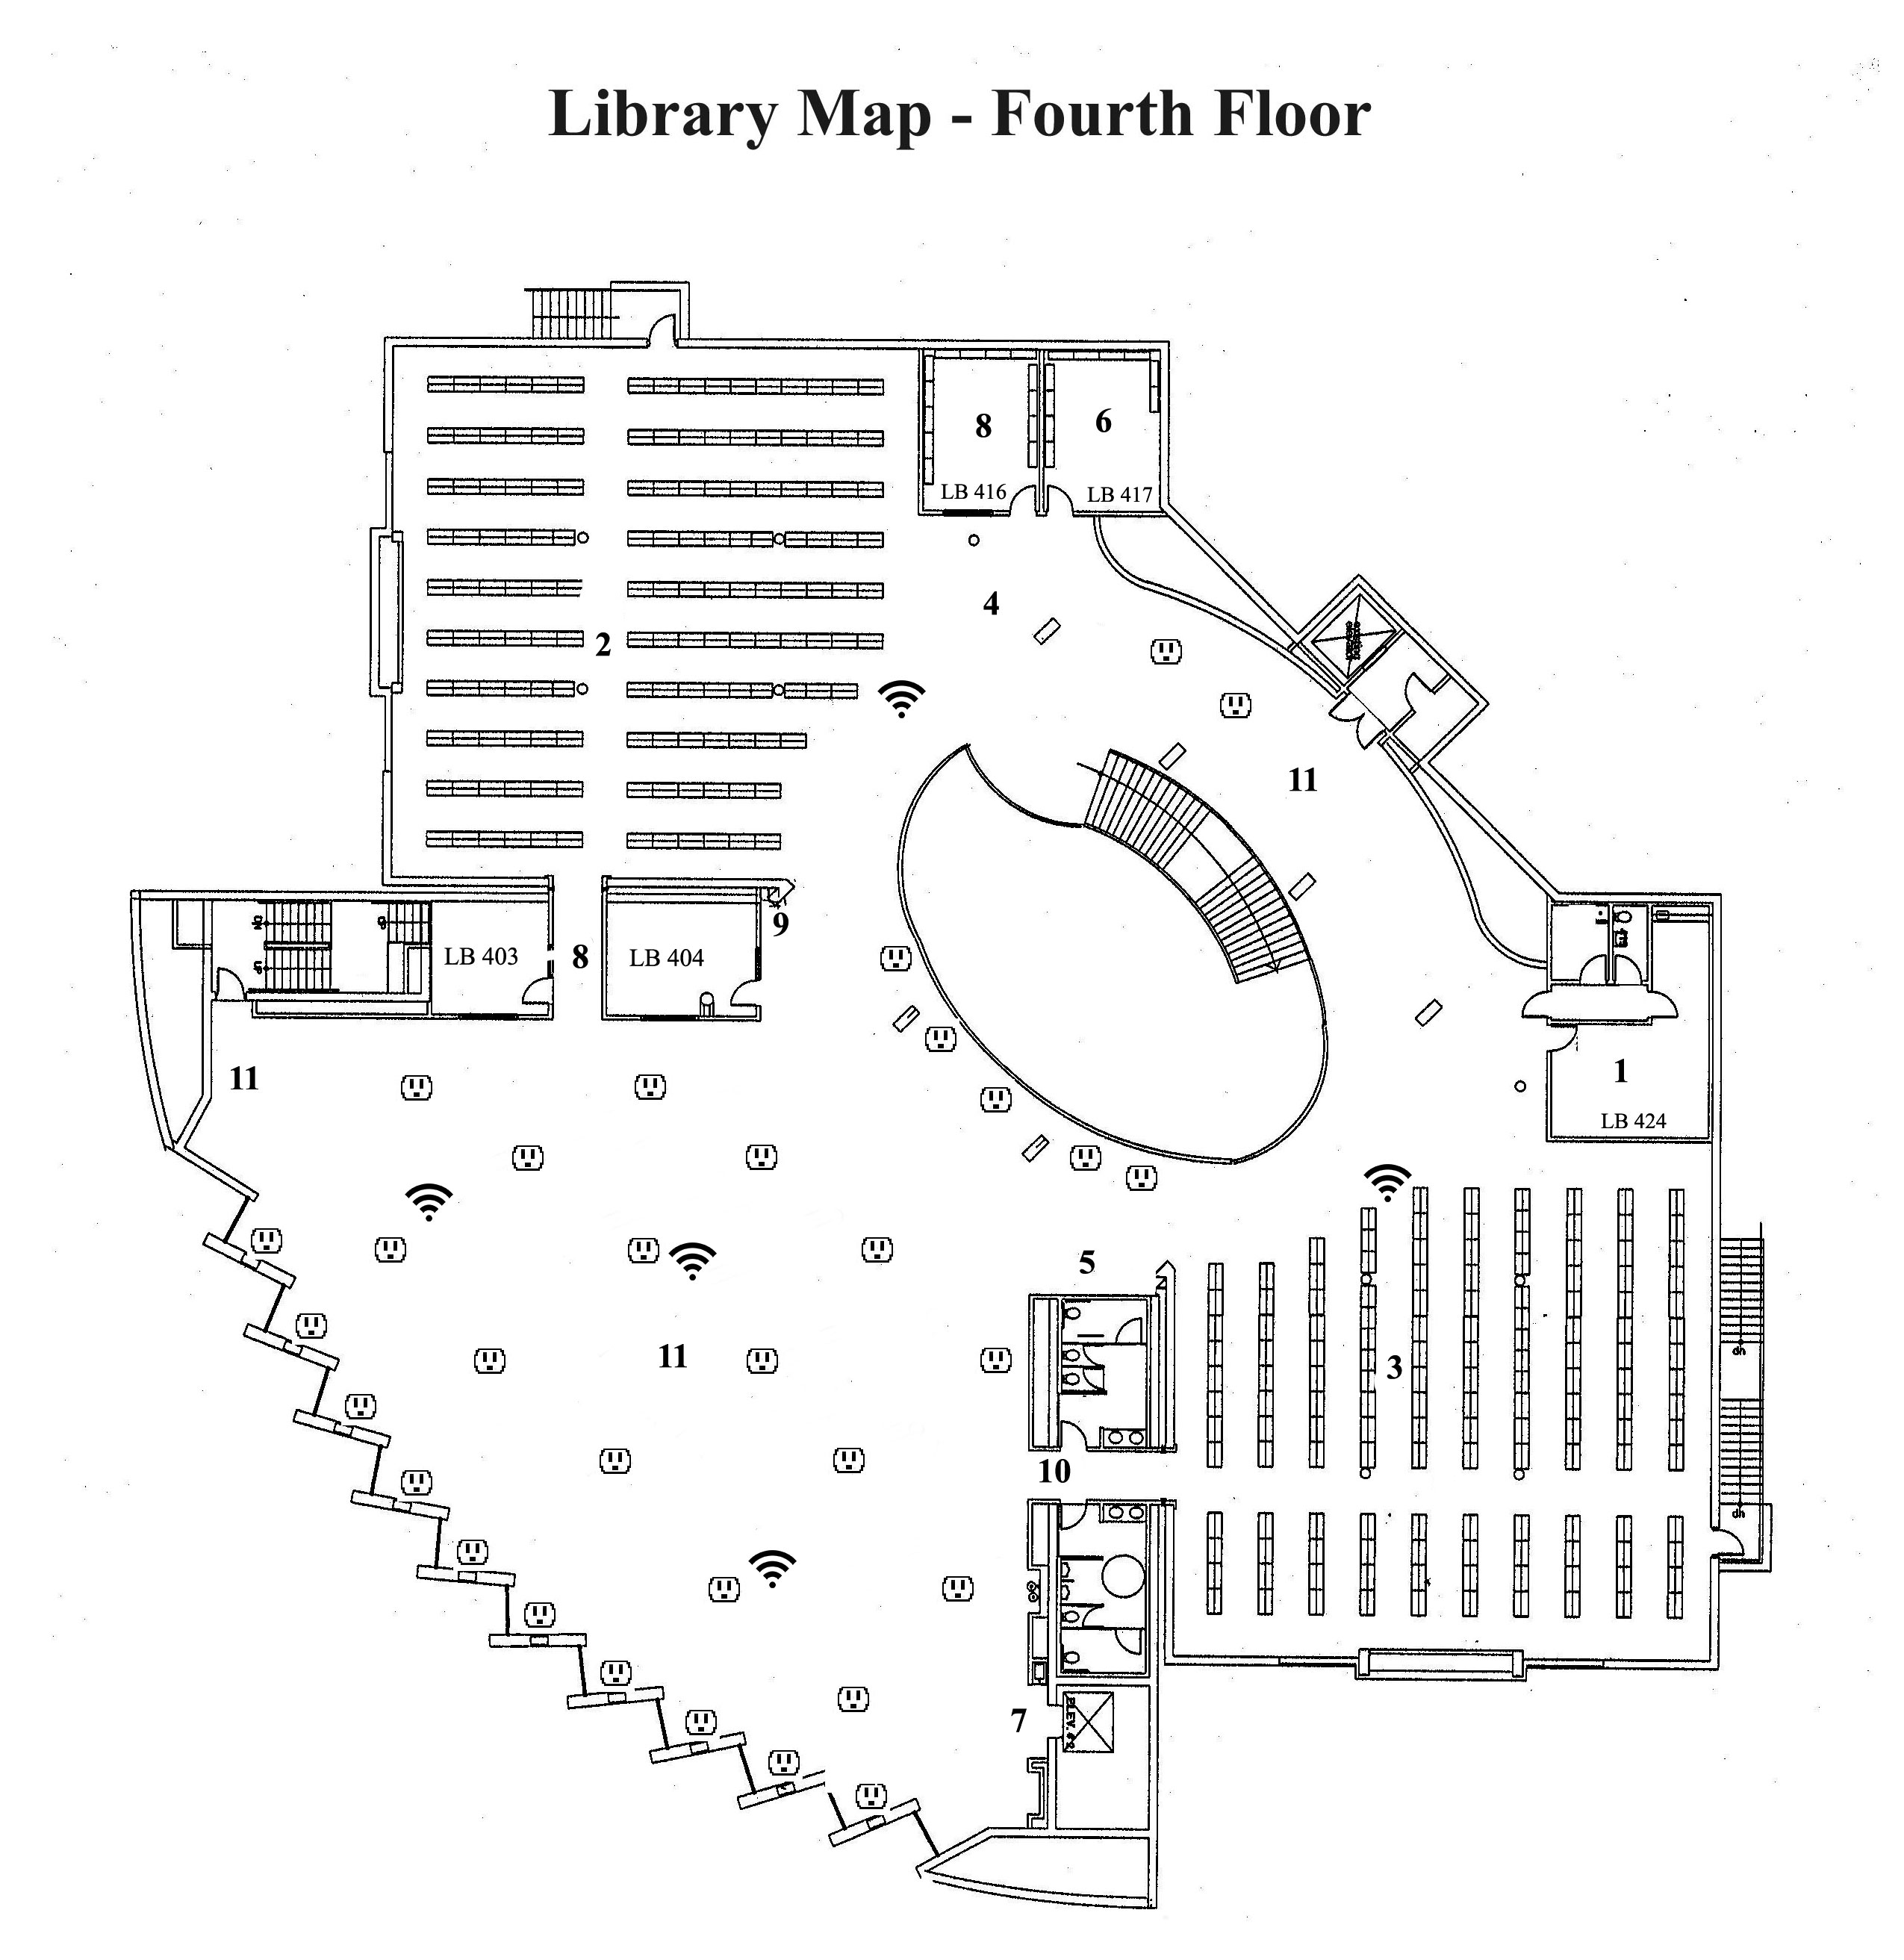 Floor Plan of Library 4th Floor